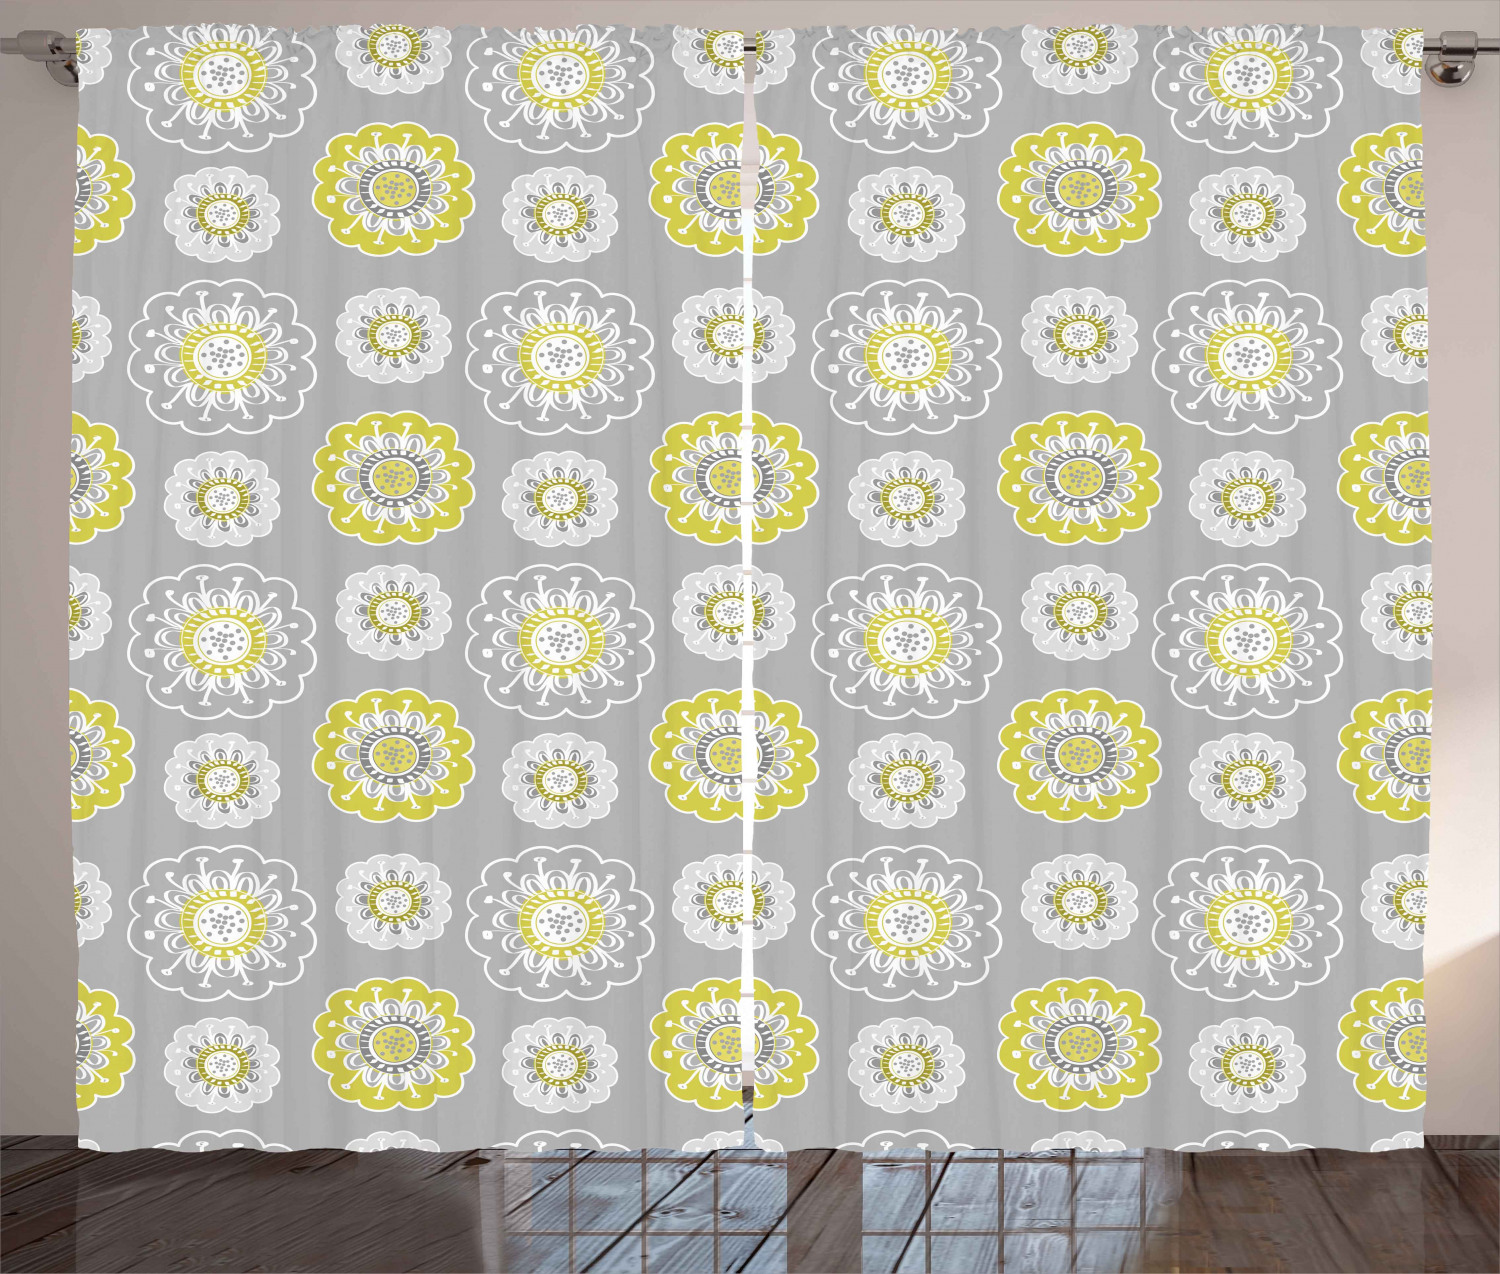 grey and yellow curtains 2 panels set pale grey backdrop with ethnic inspired flowers ivy image window drapes for living room bedroom 108w x 63l